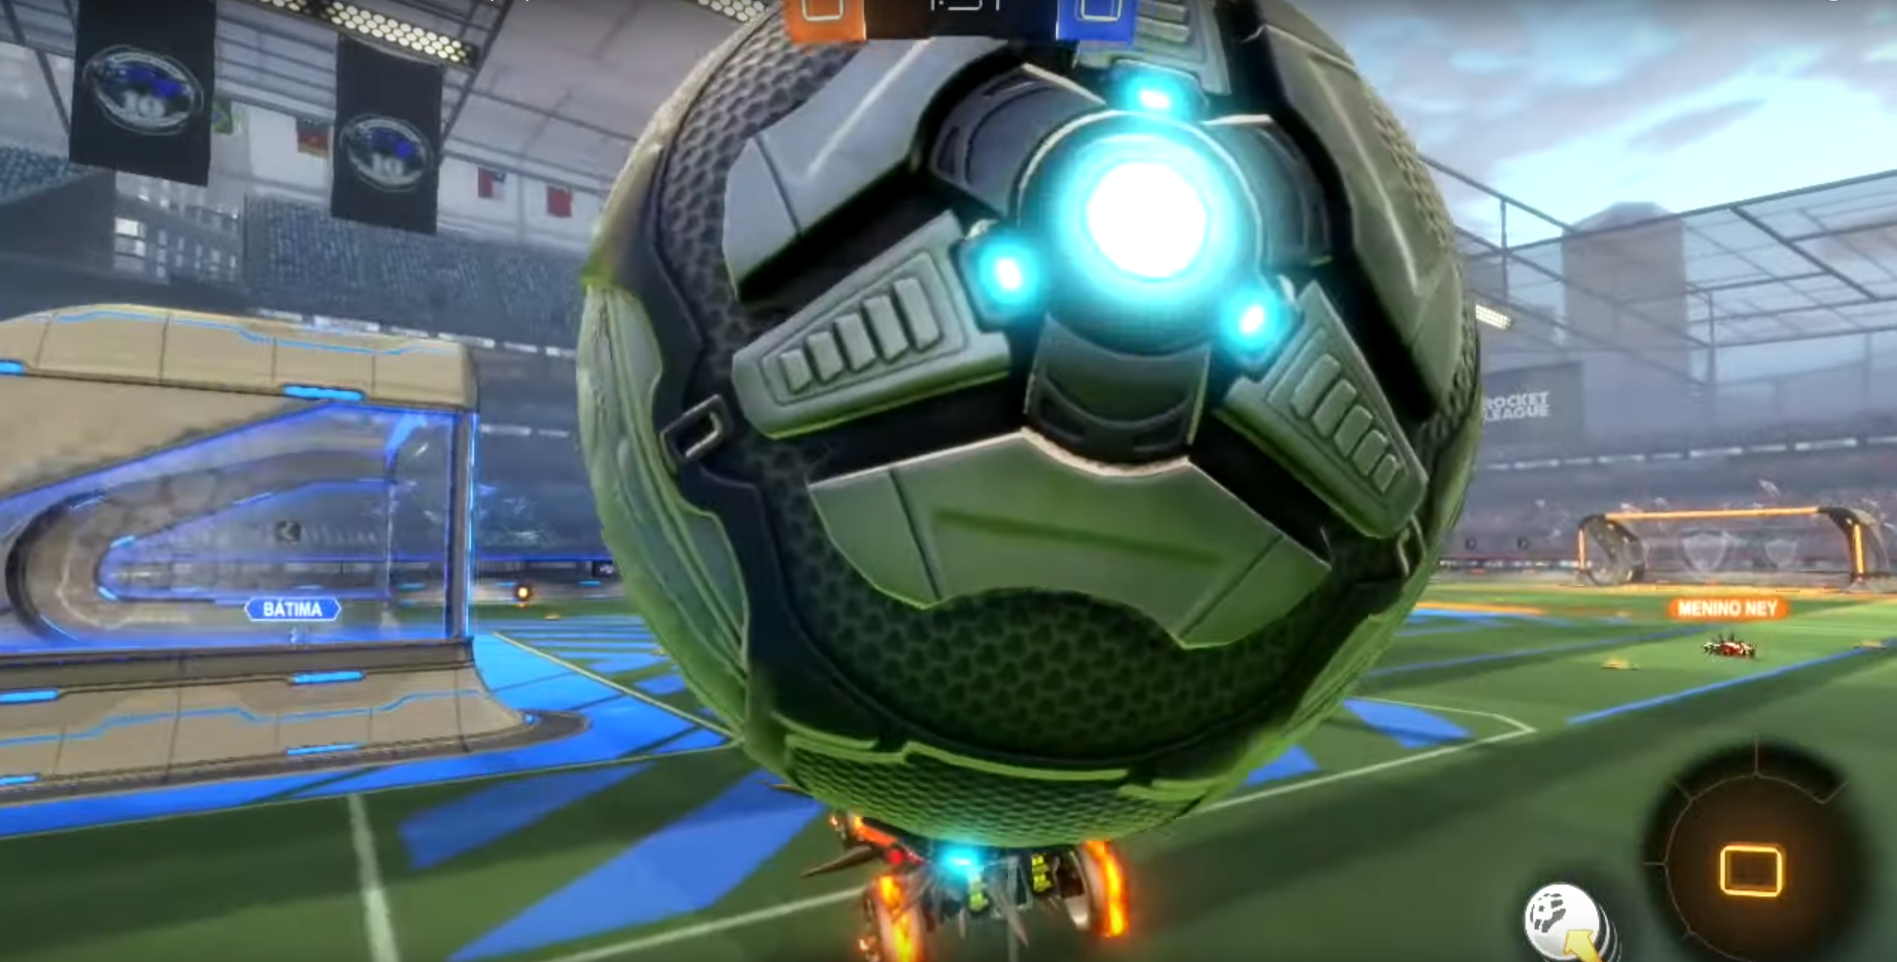 Spike Rush Is Returning To Rocket League Once Again As A